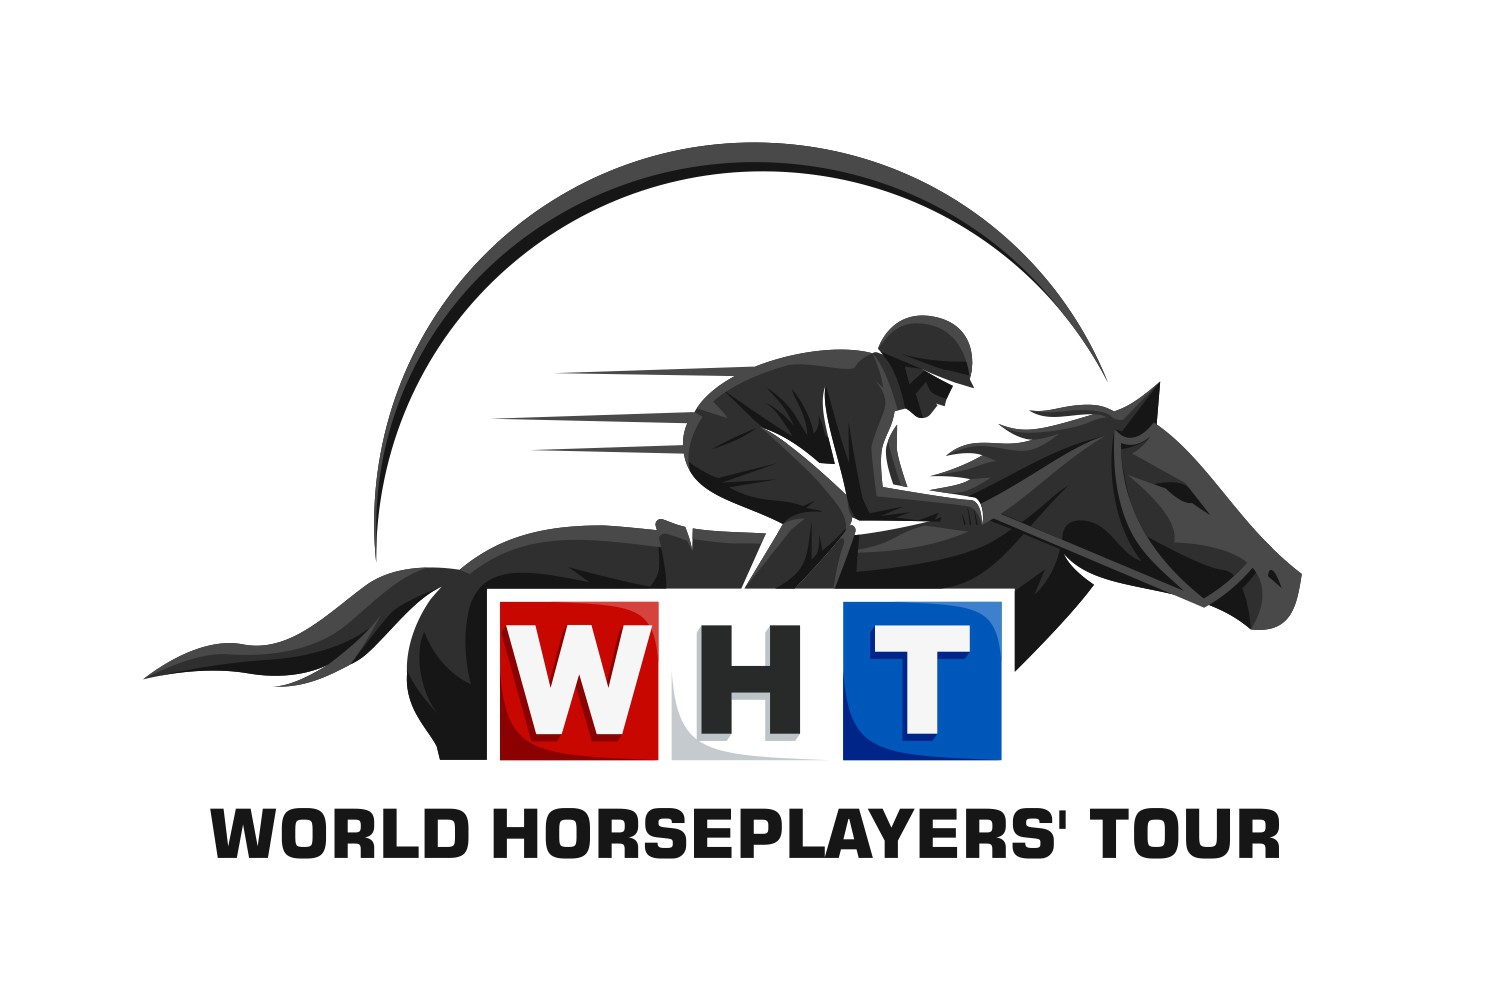 Design a logo for the World Horseplayers' Tour